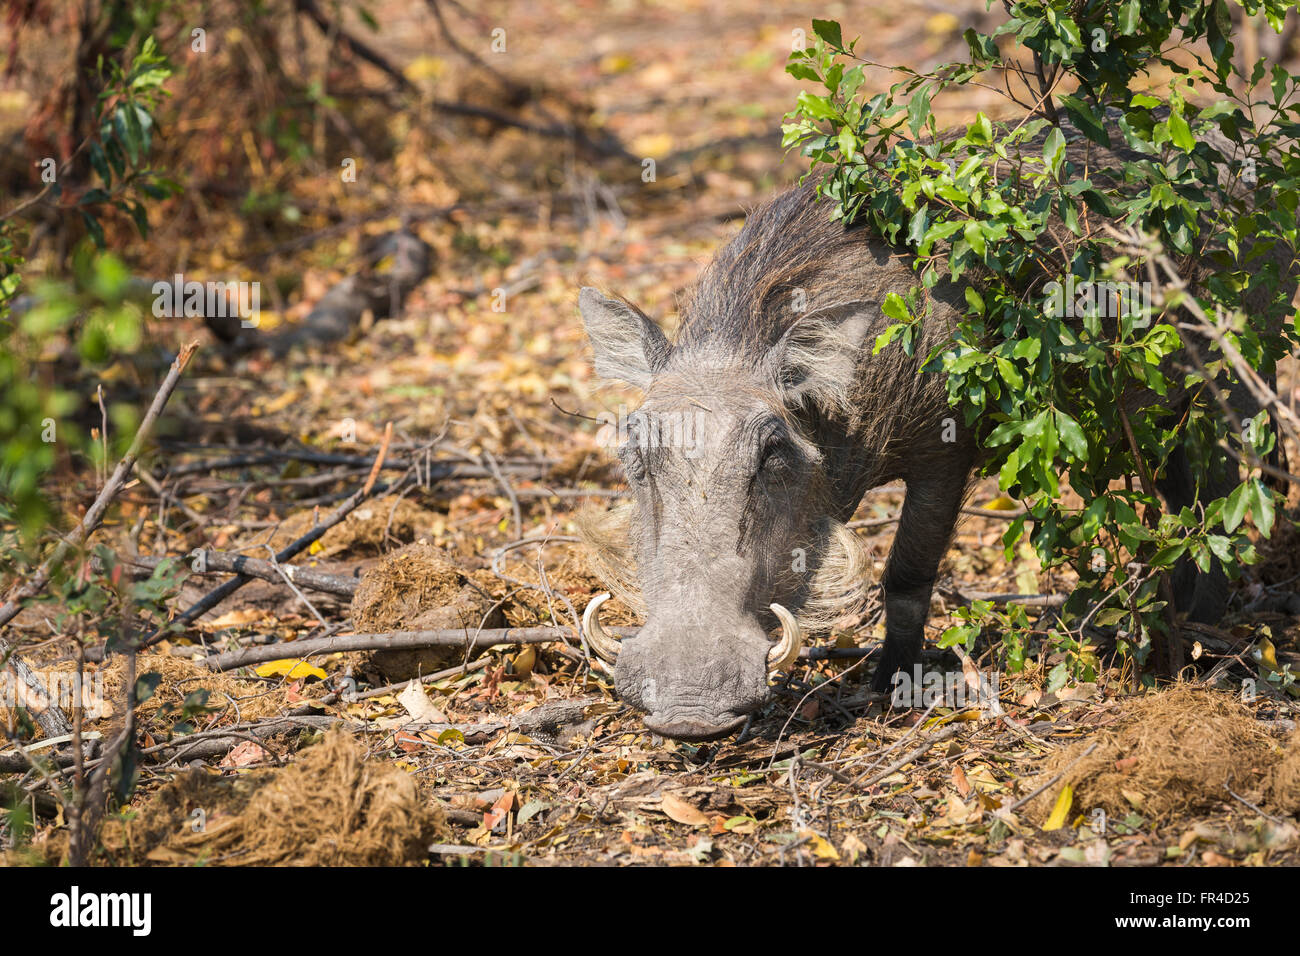 Close up of a warthog (Phacochoerus africanus) in undergrowth, Sandibe Camp, by the Moremi Game Reserve, Okavango - Stock Image